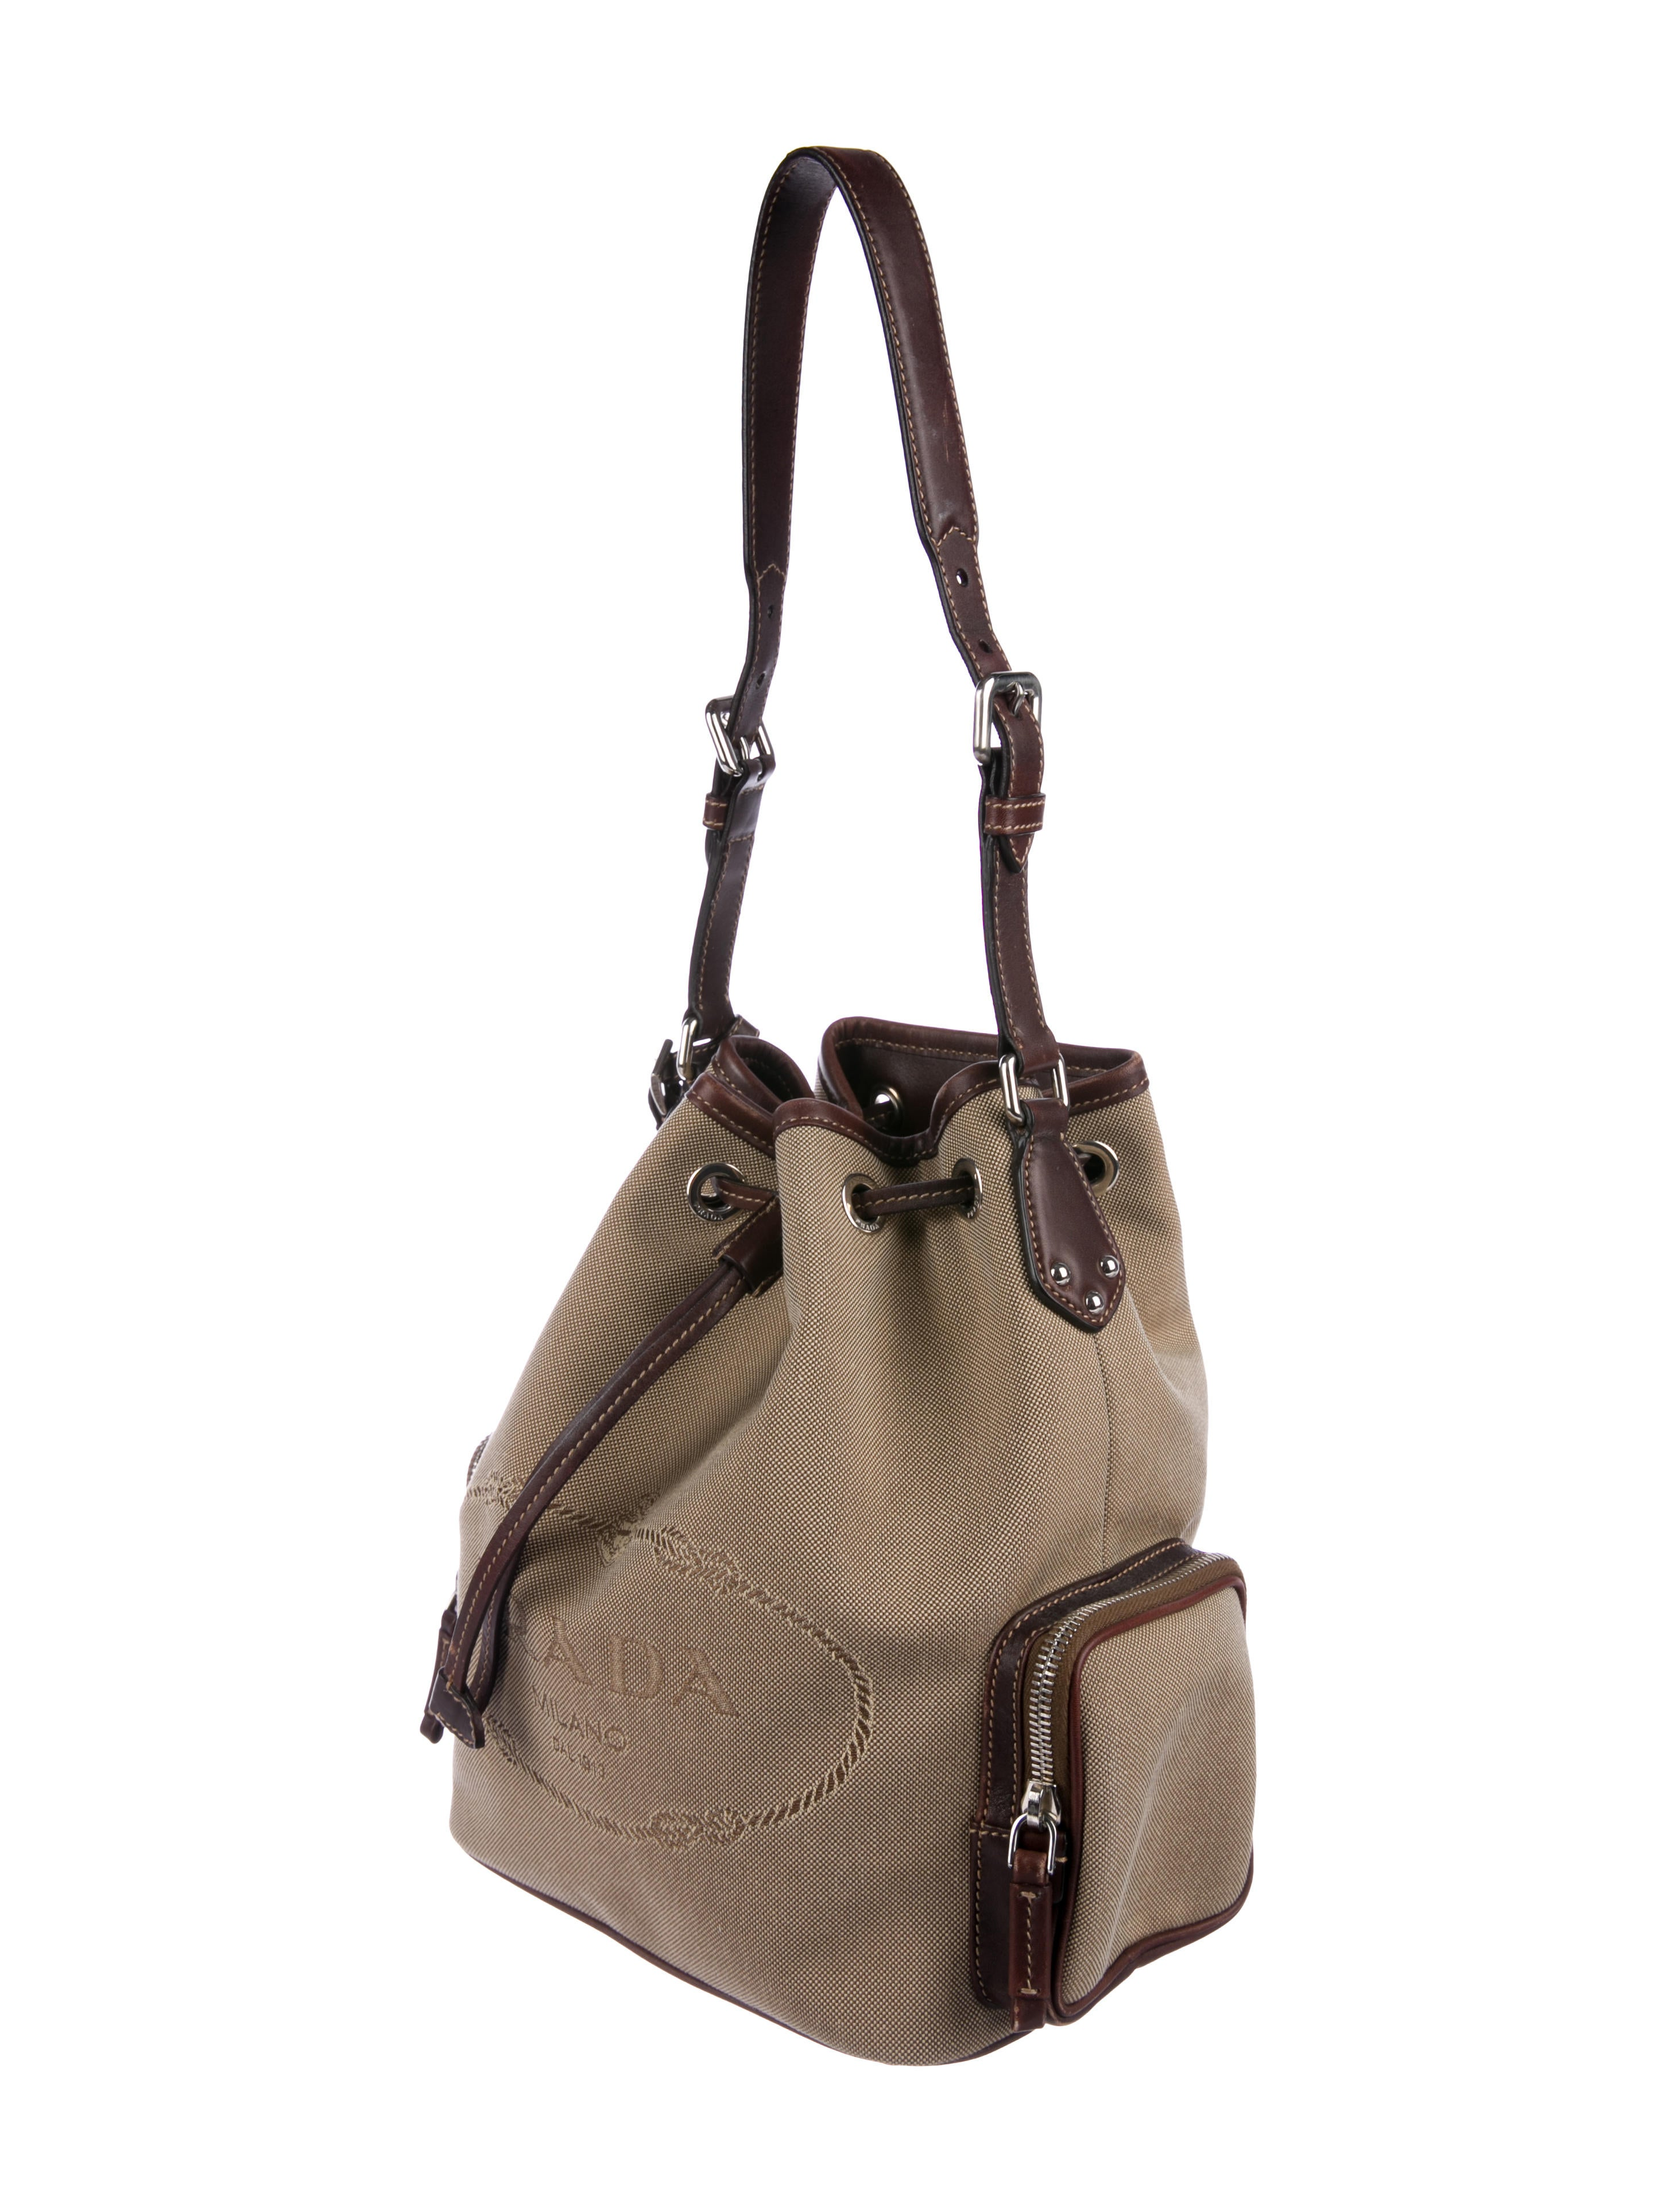 fe547d3bc0c8 Trimmed Prada Canvas Bucket Bag Leather AO05qwv for forced ...